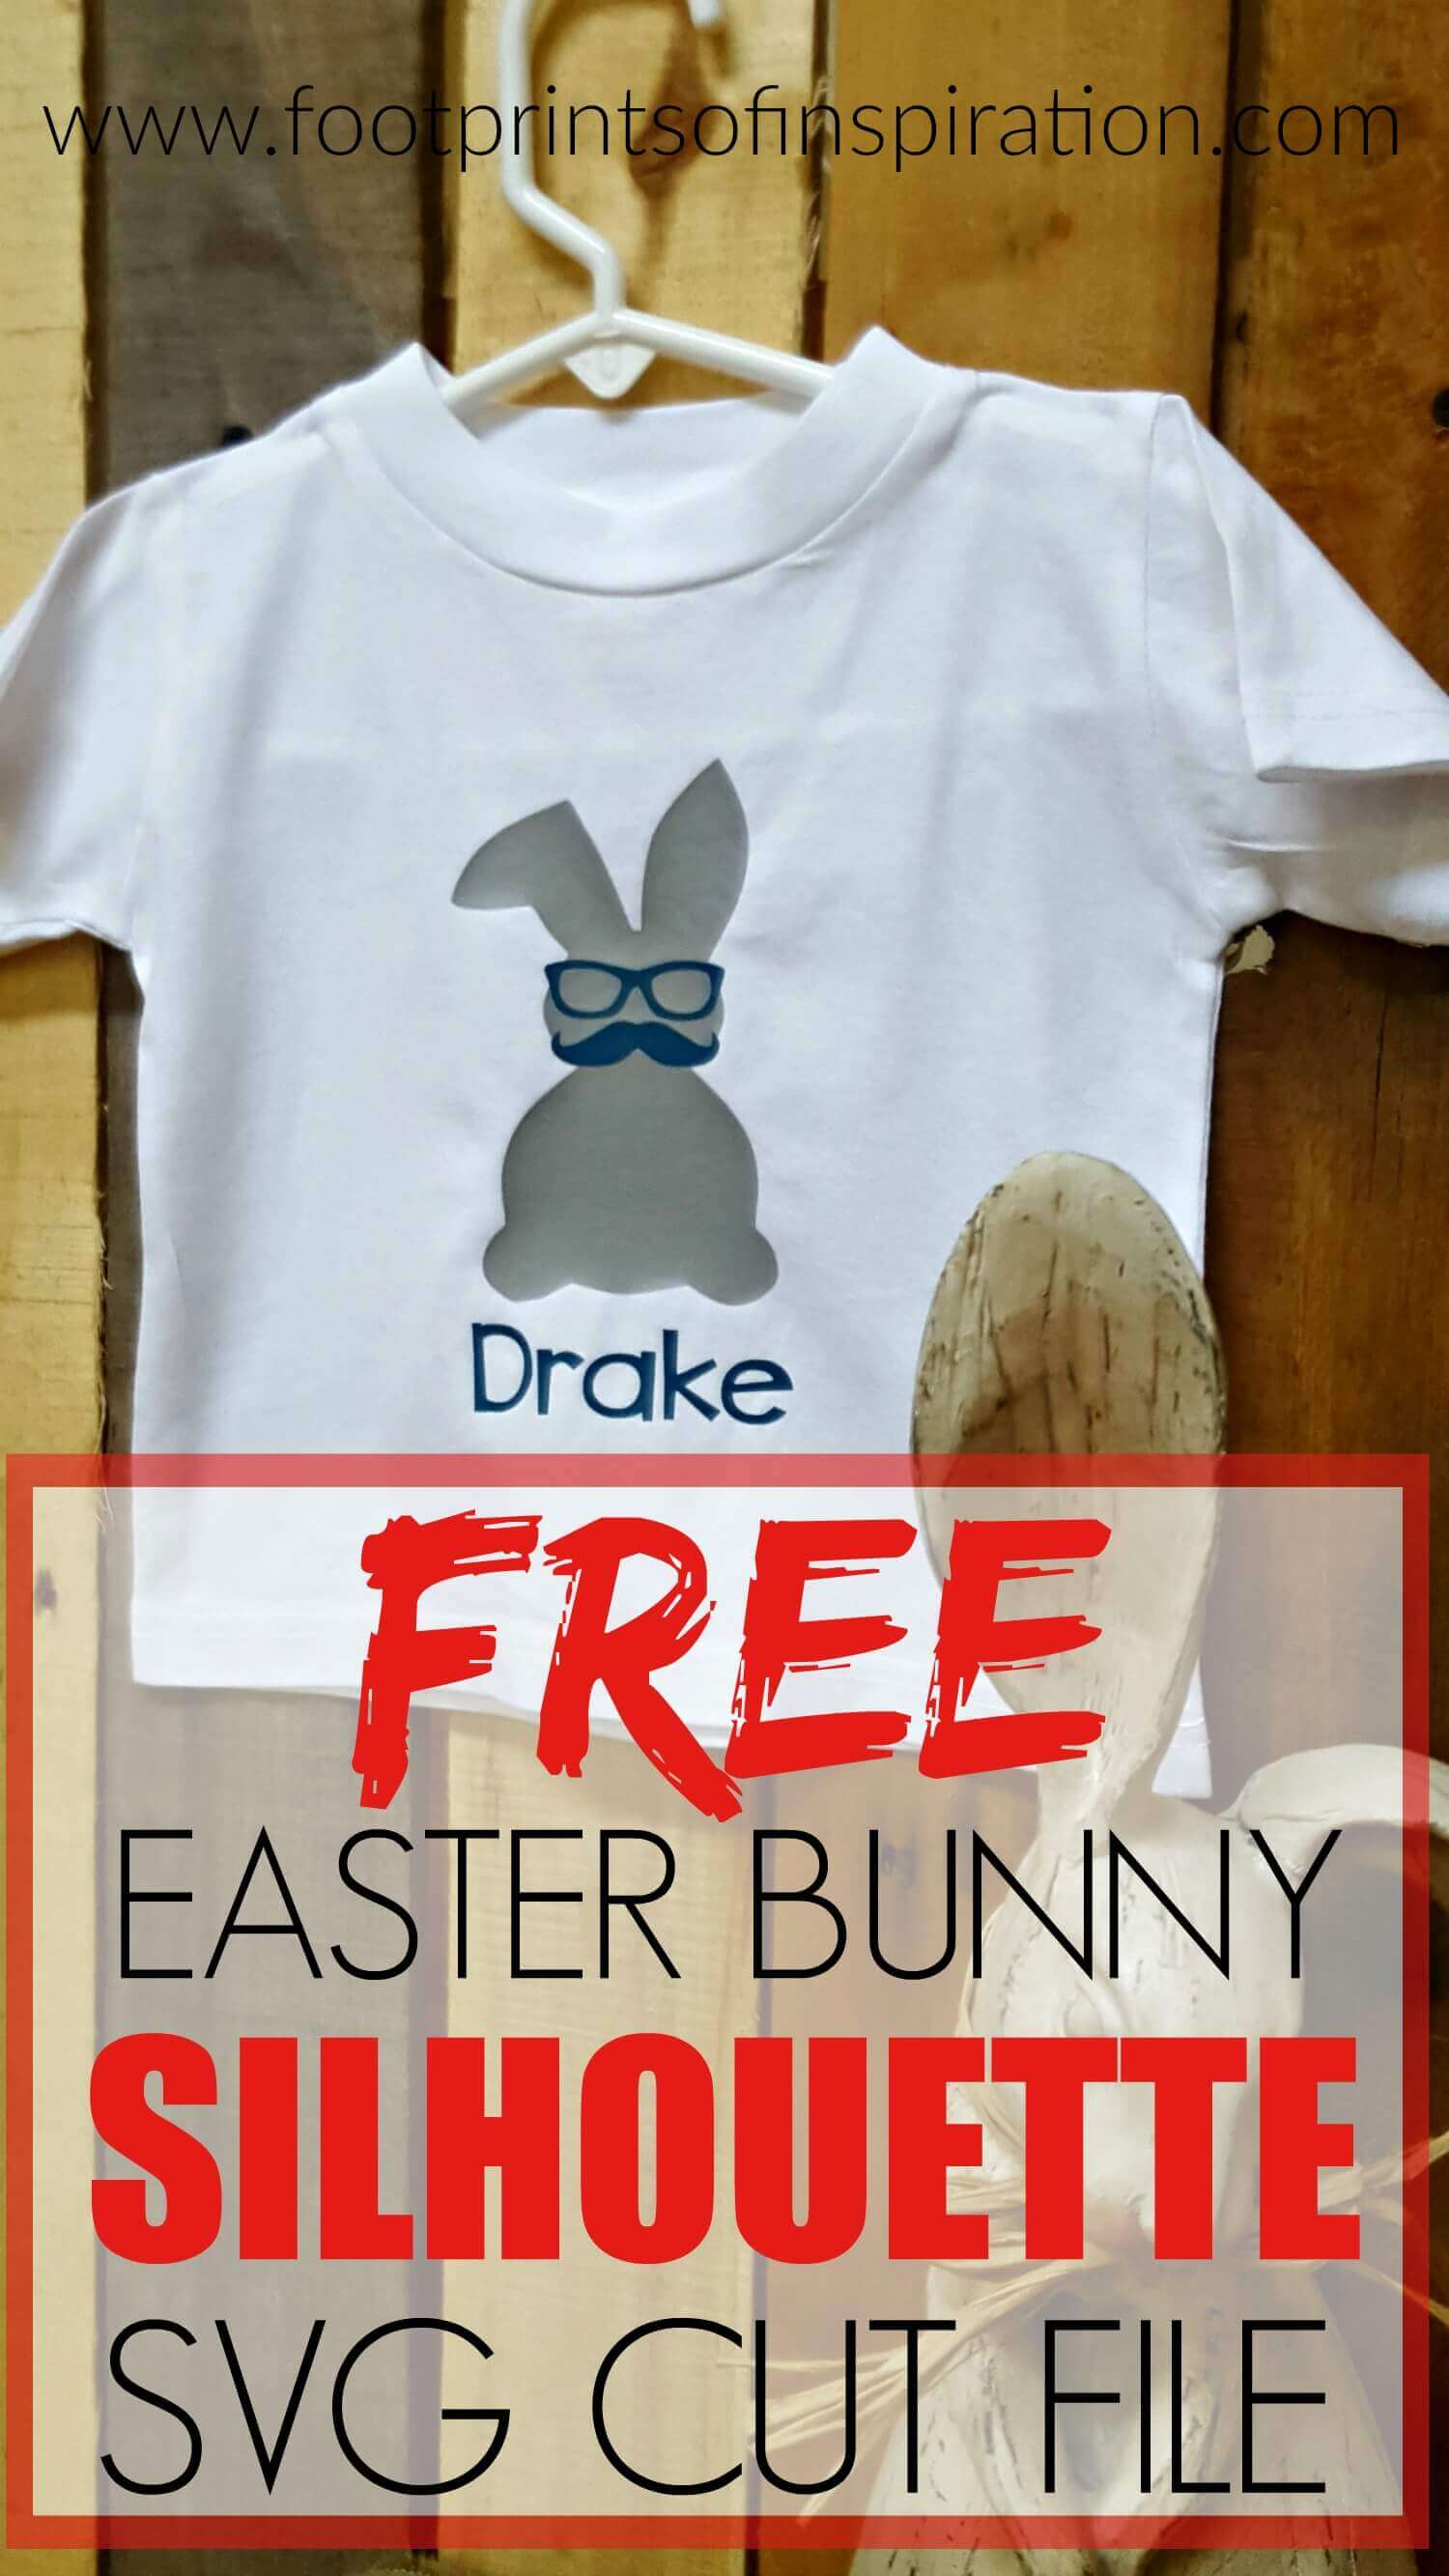 Free Easter Bunny SVG Cut File for your Silhouette and Cricut cutting machine.